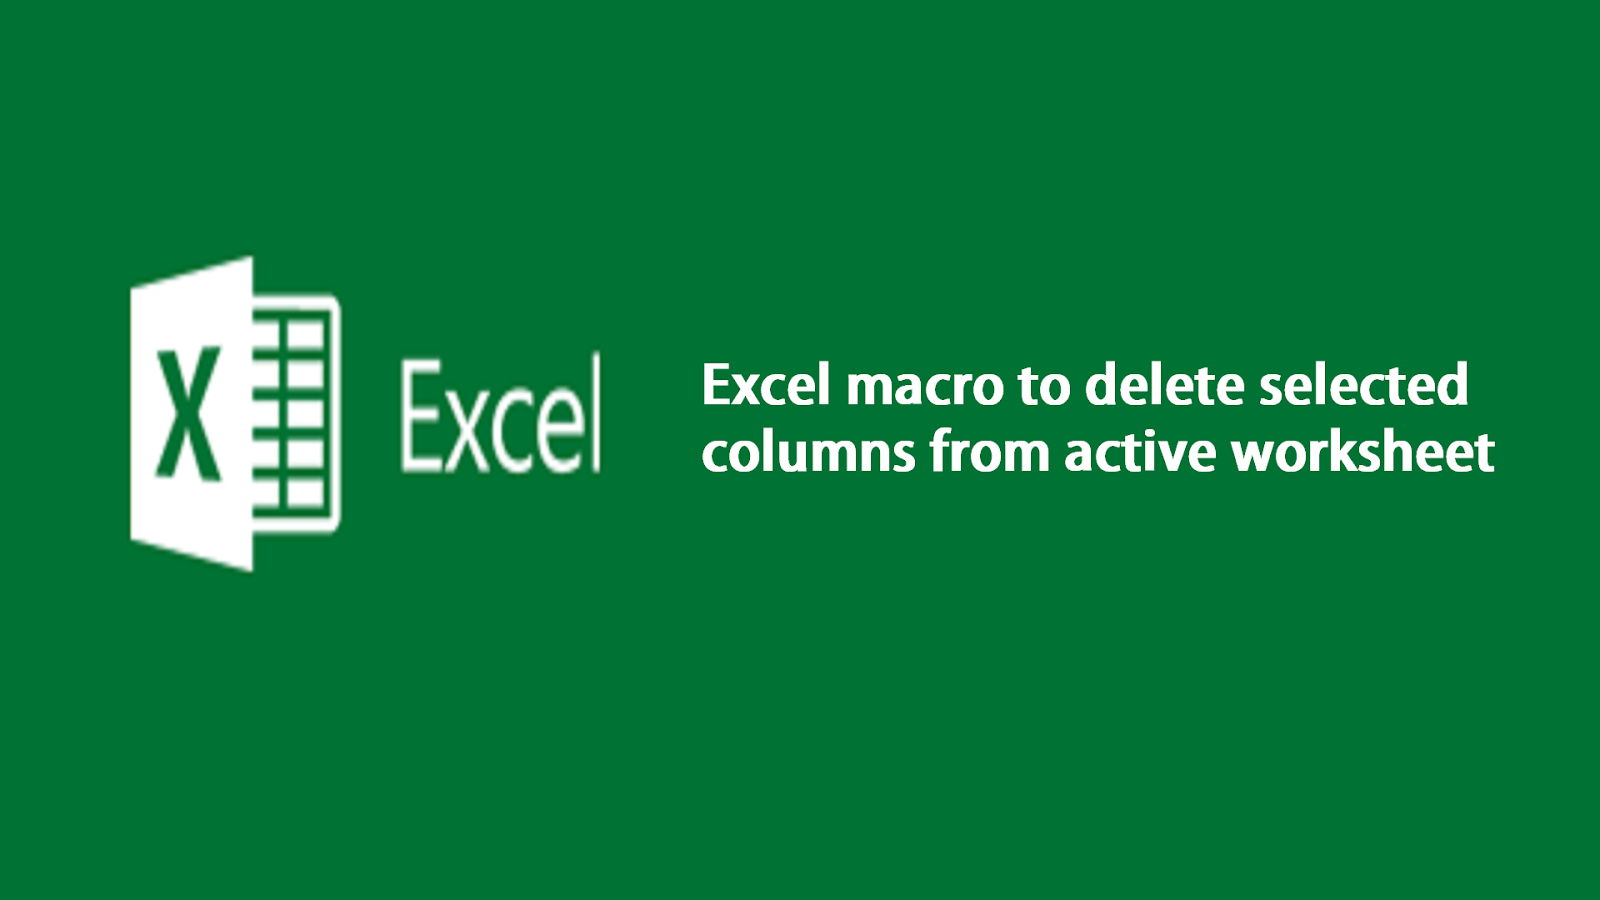 worksheet Vba Delete Worksheet how to delete columns from worksheet by excel macro